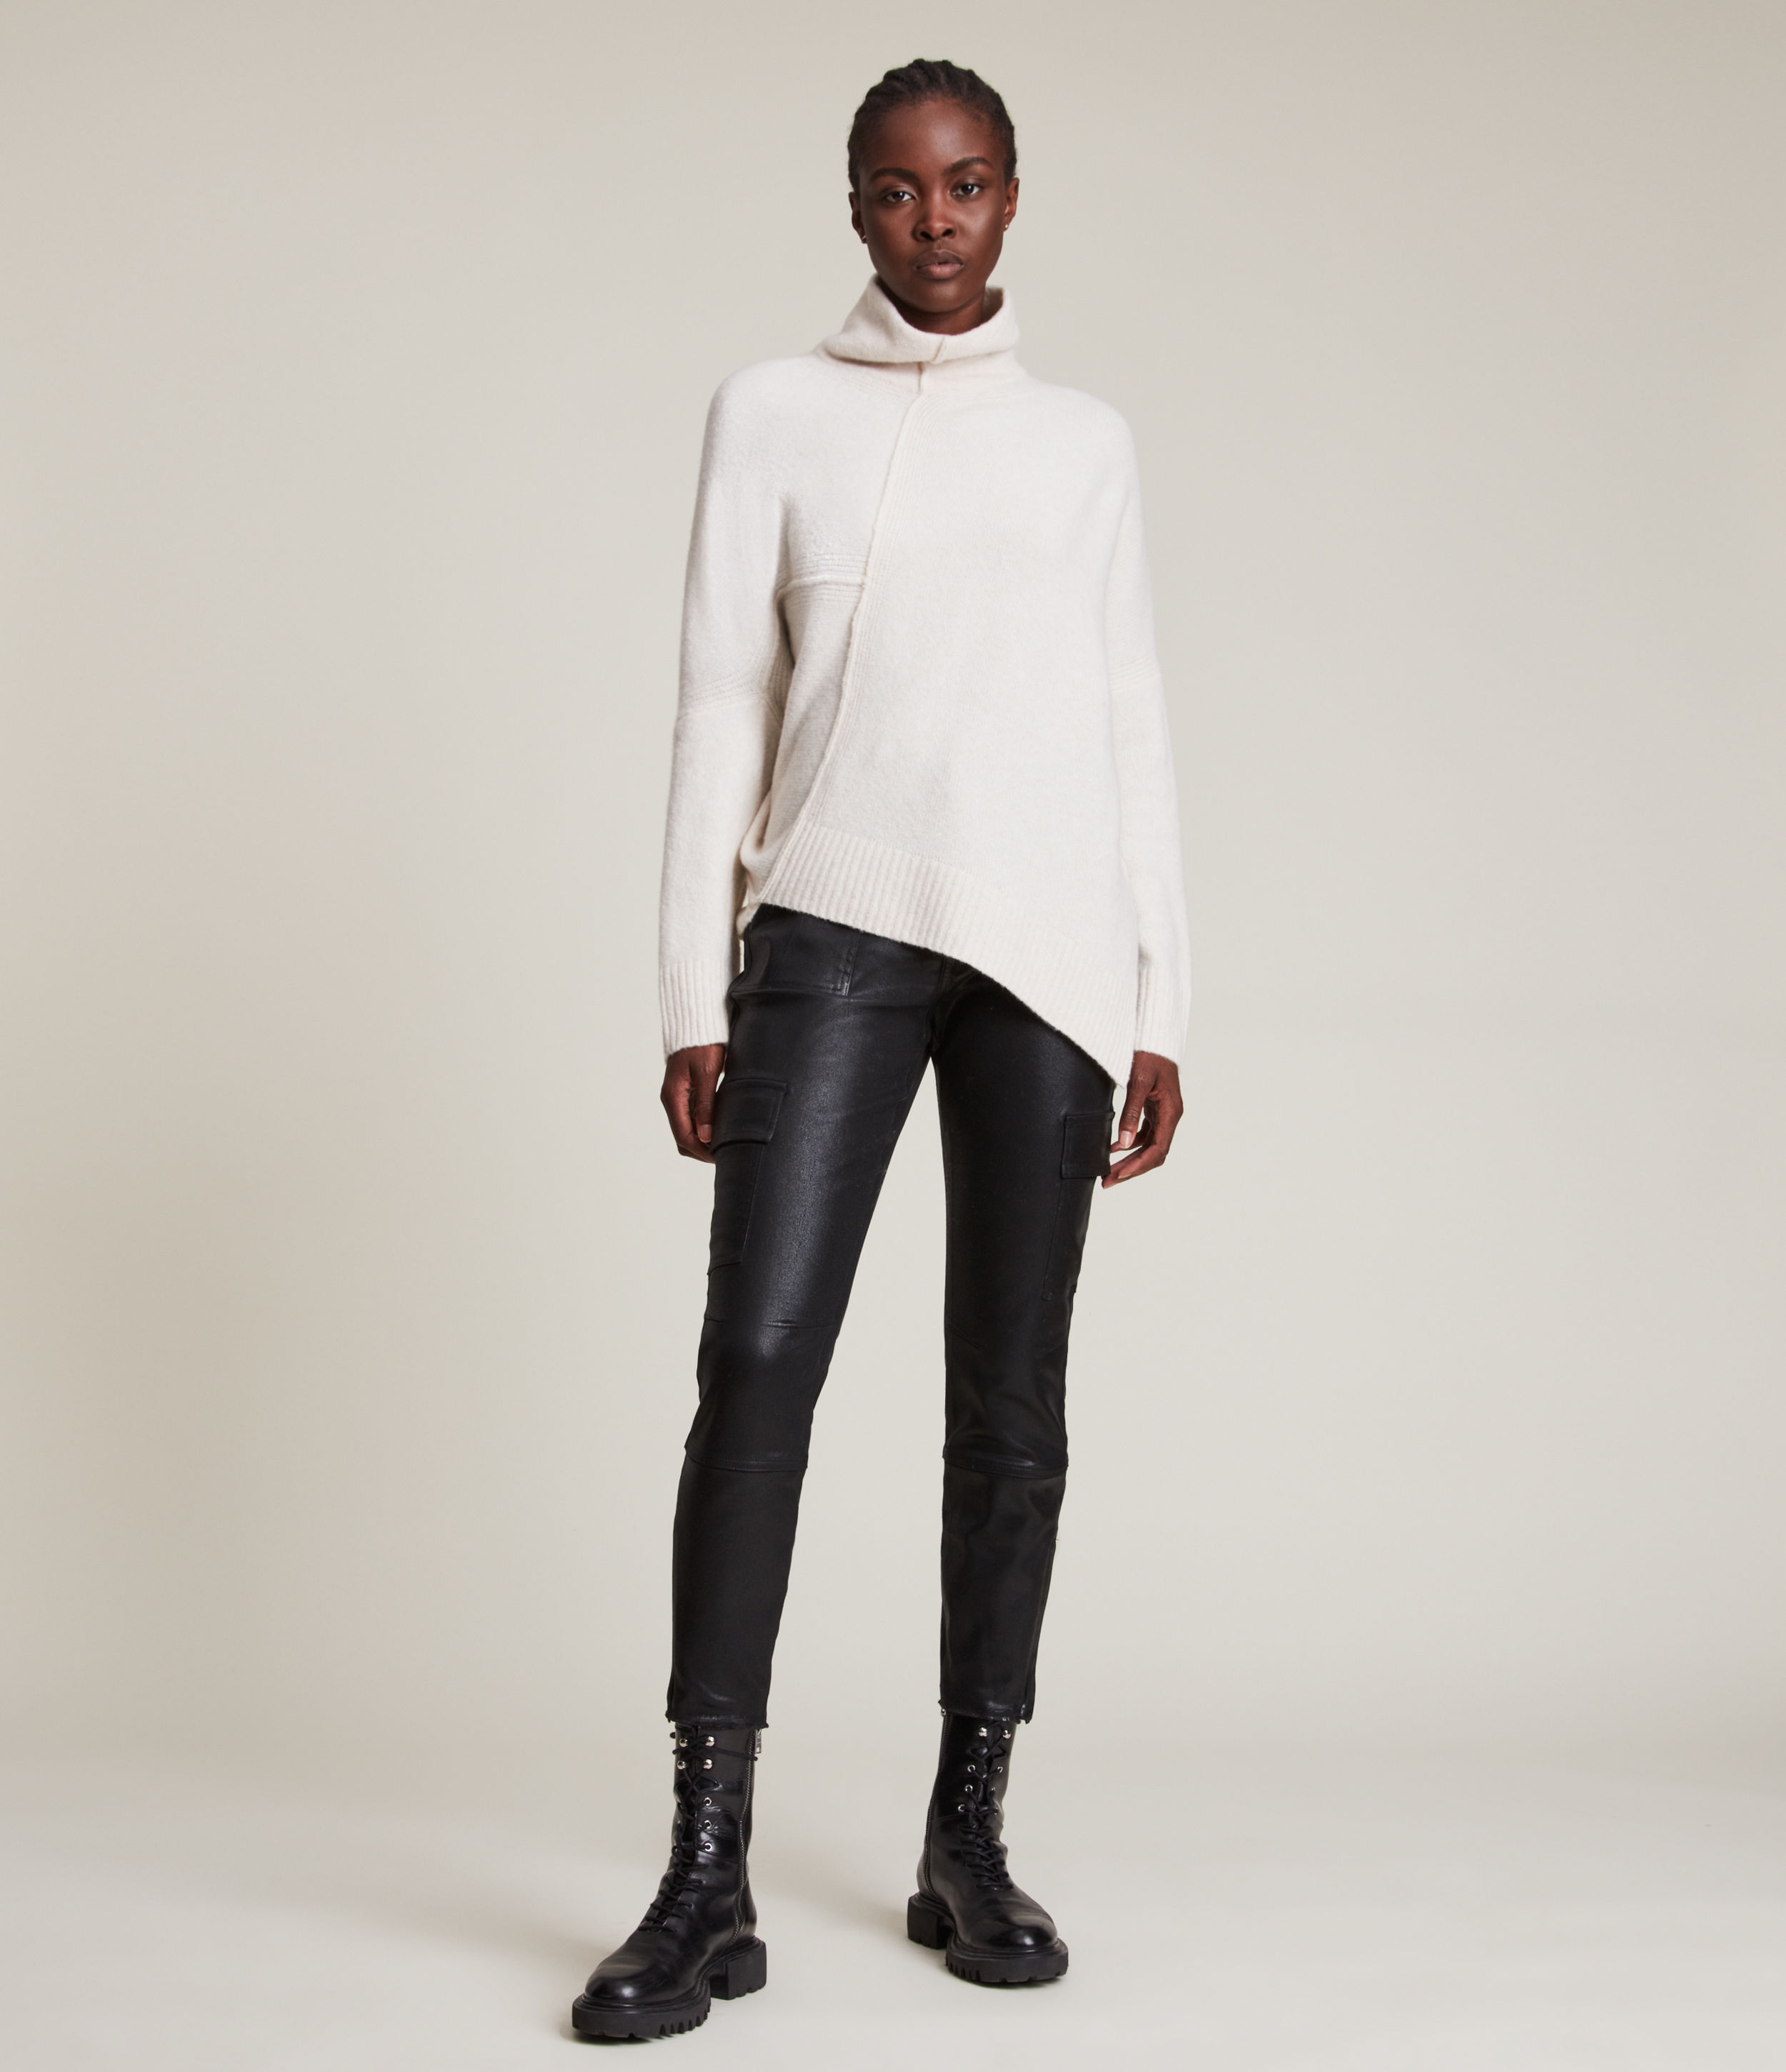 AllSaints Women's Wool Relaxed Fit Lock Roll Neck Jumper, White, Size: L